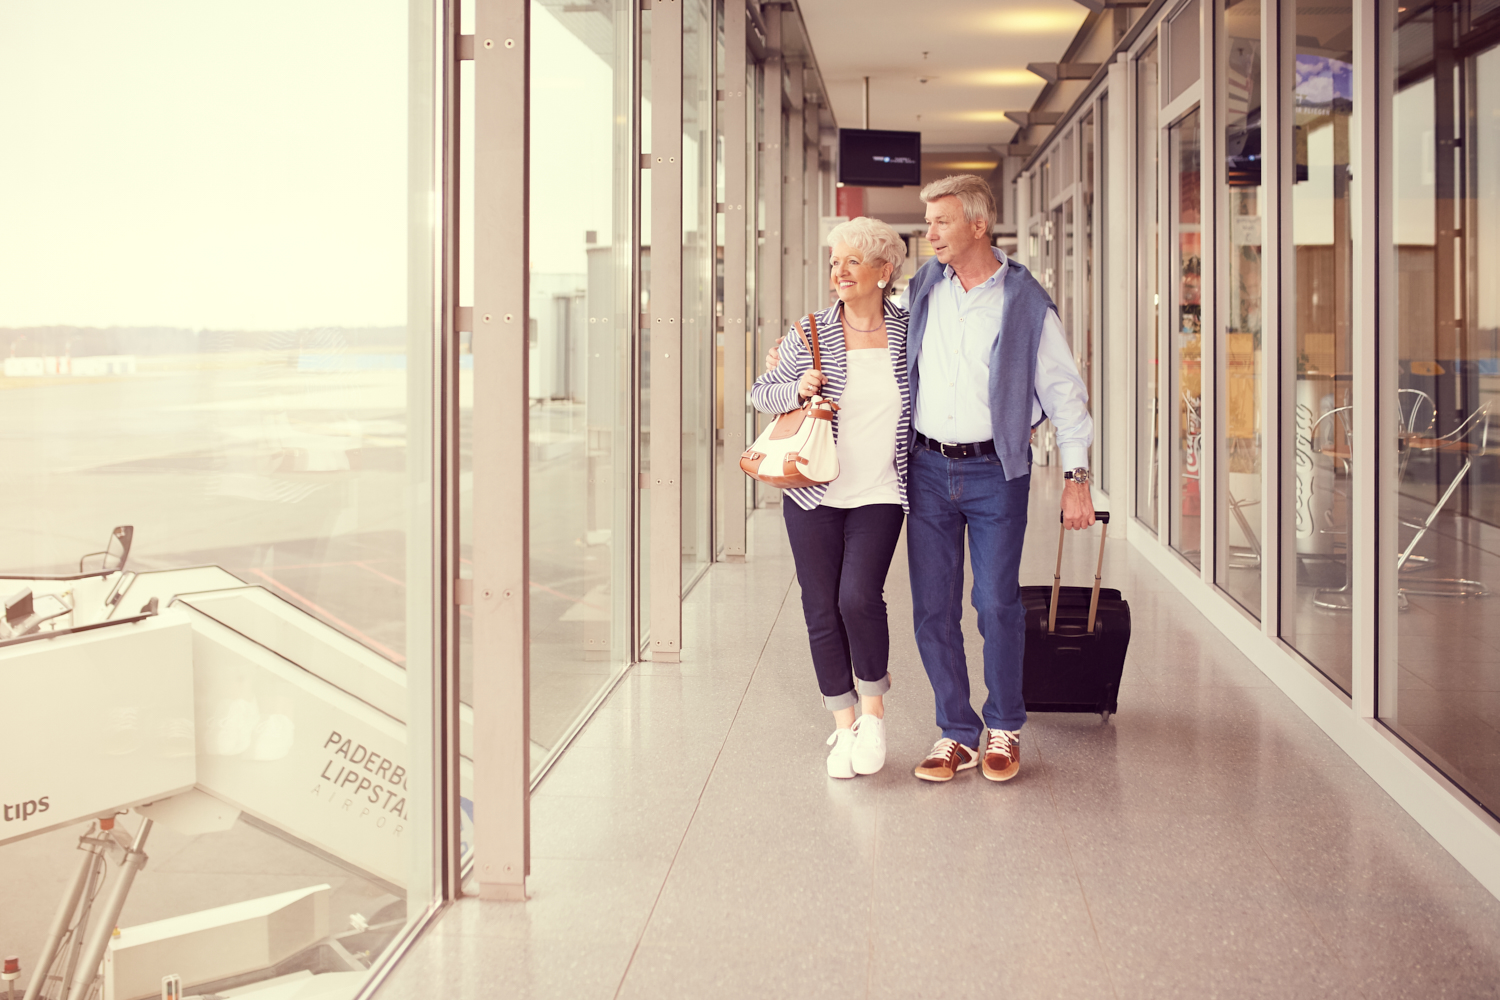 couple with trolley walking in terminal